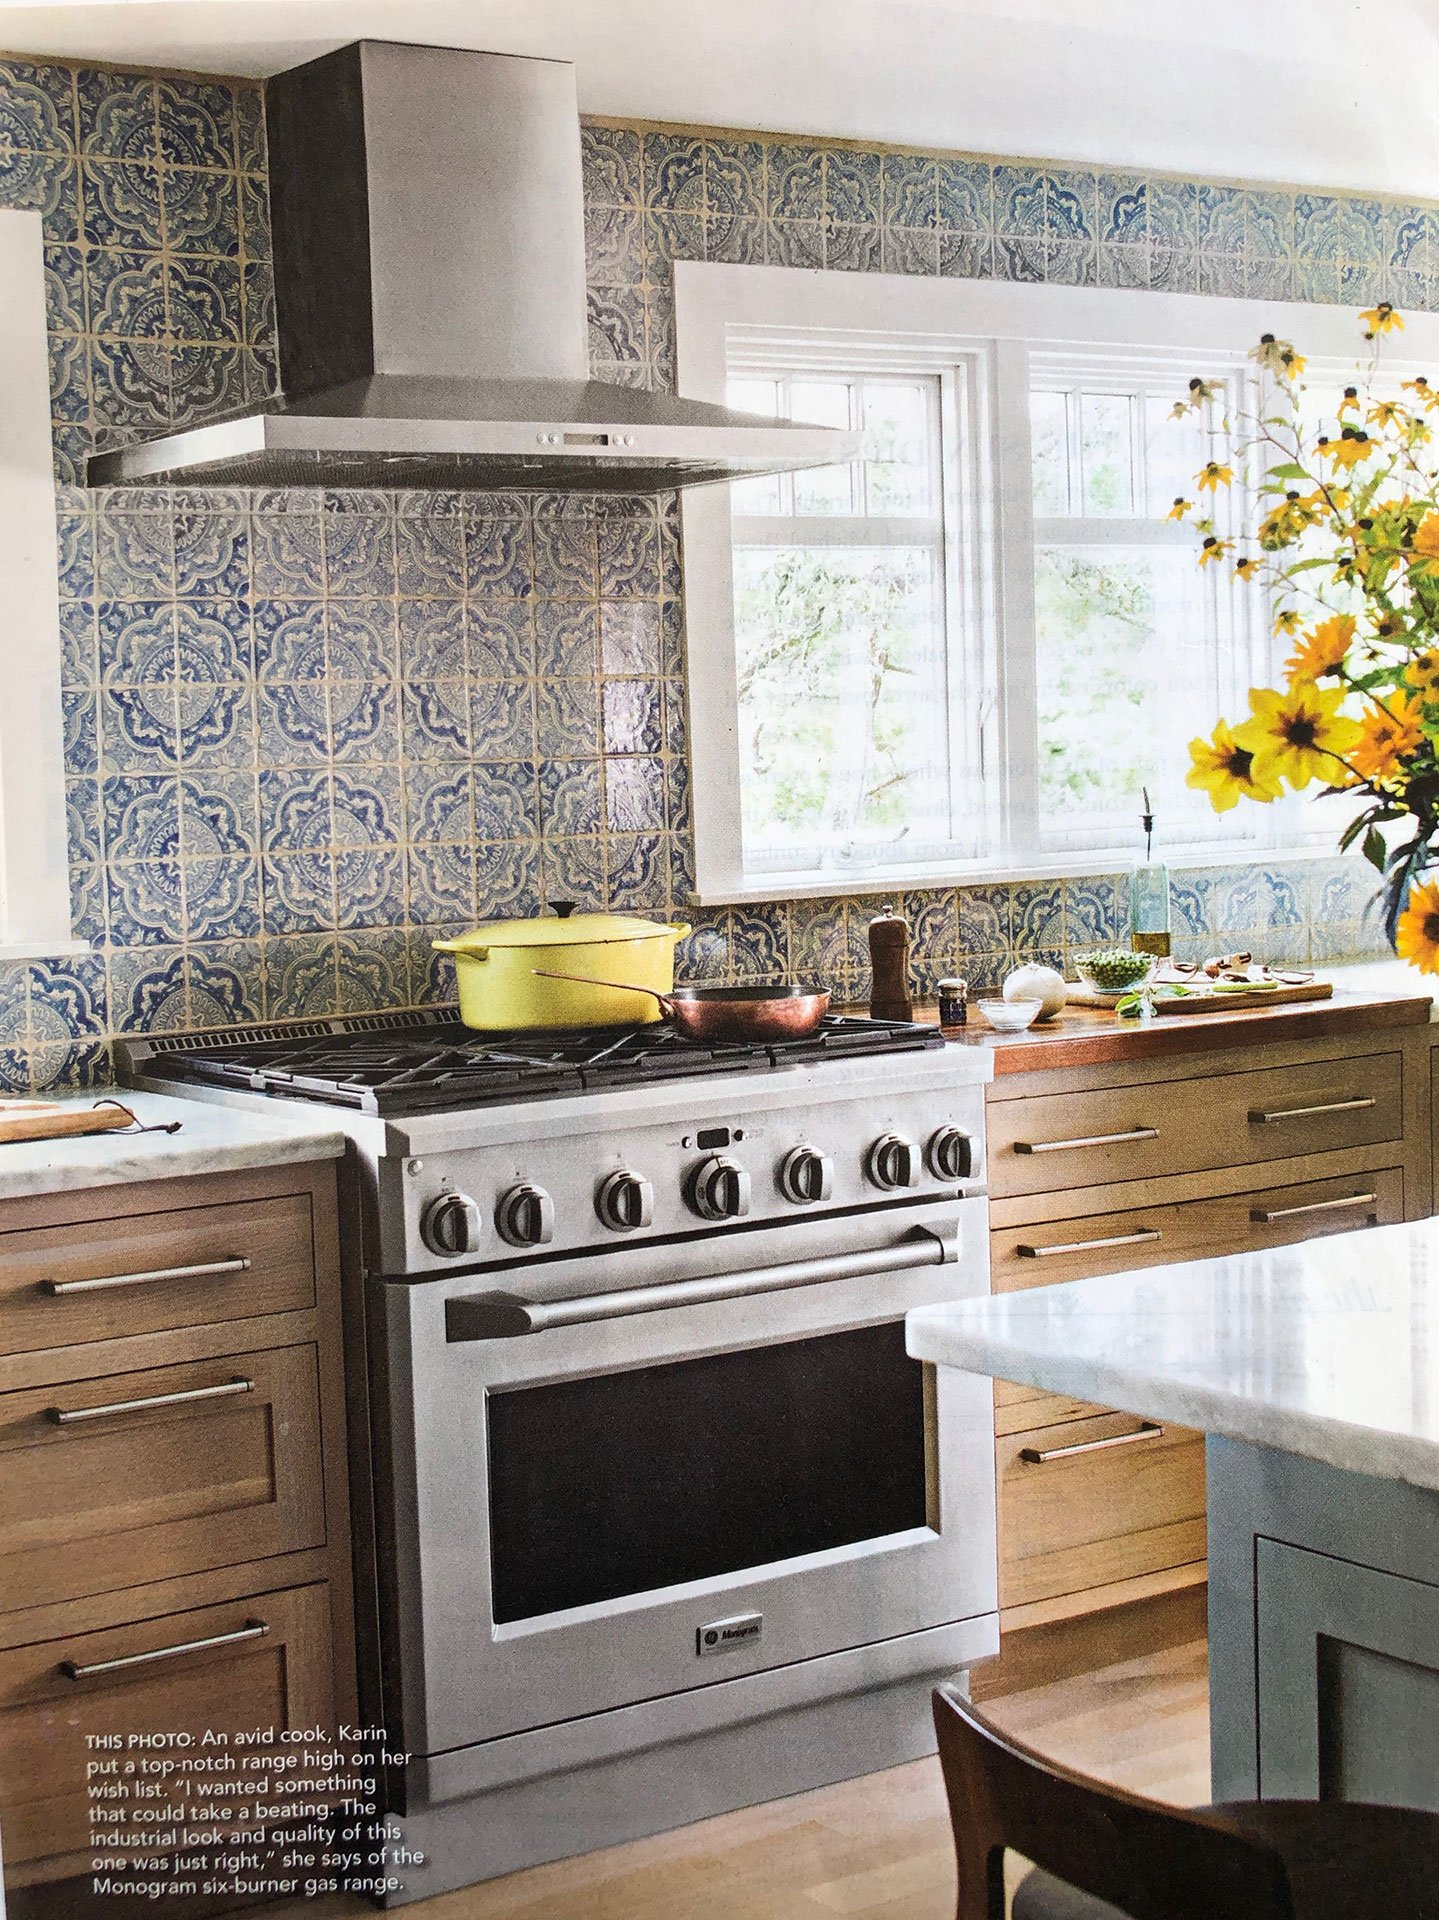 2018 Beautiful Kitchens & Baths